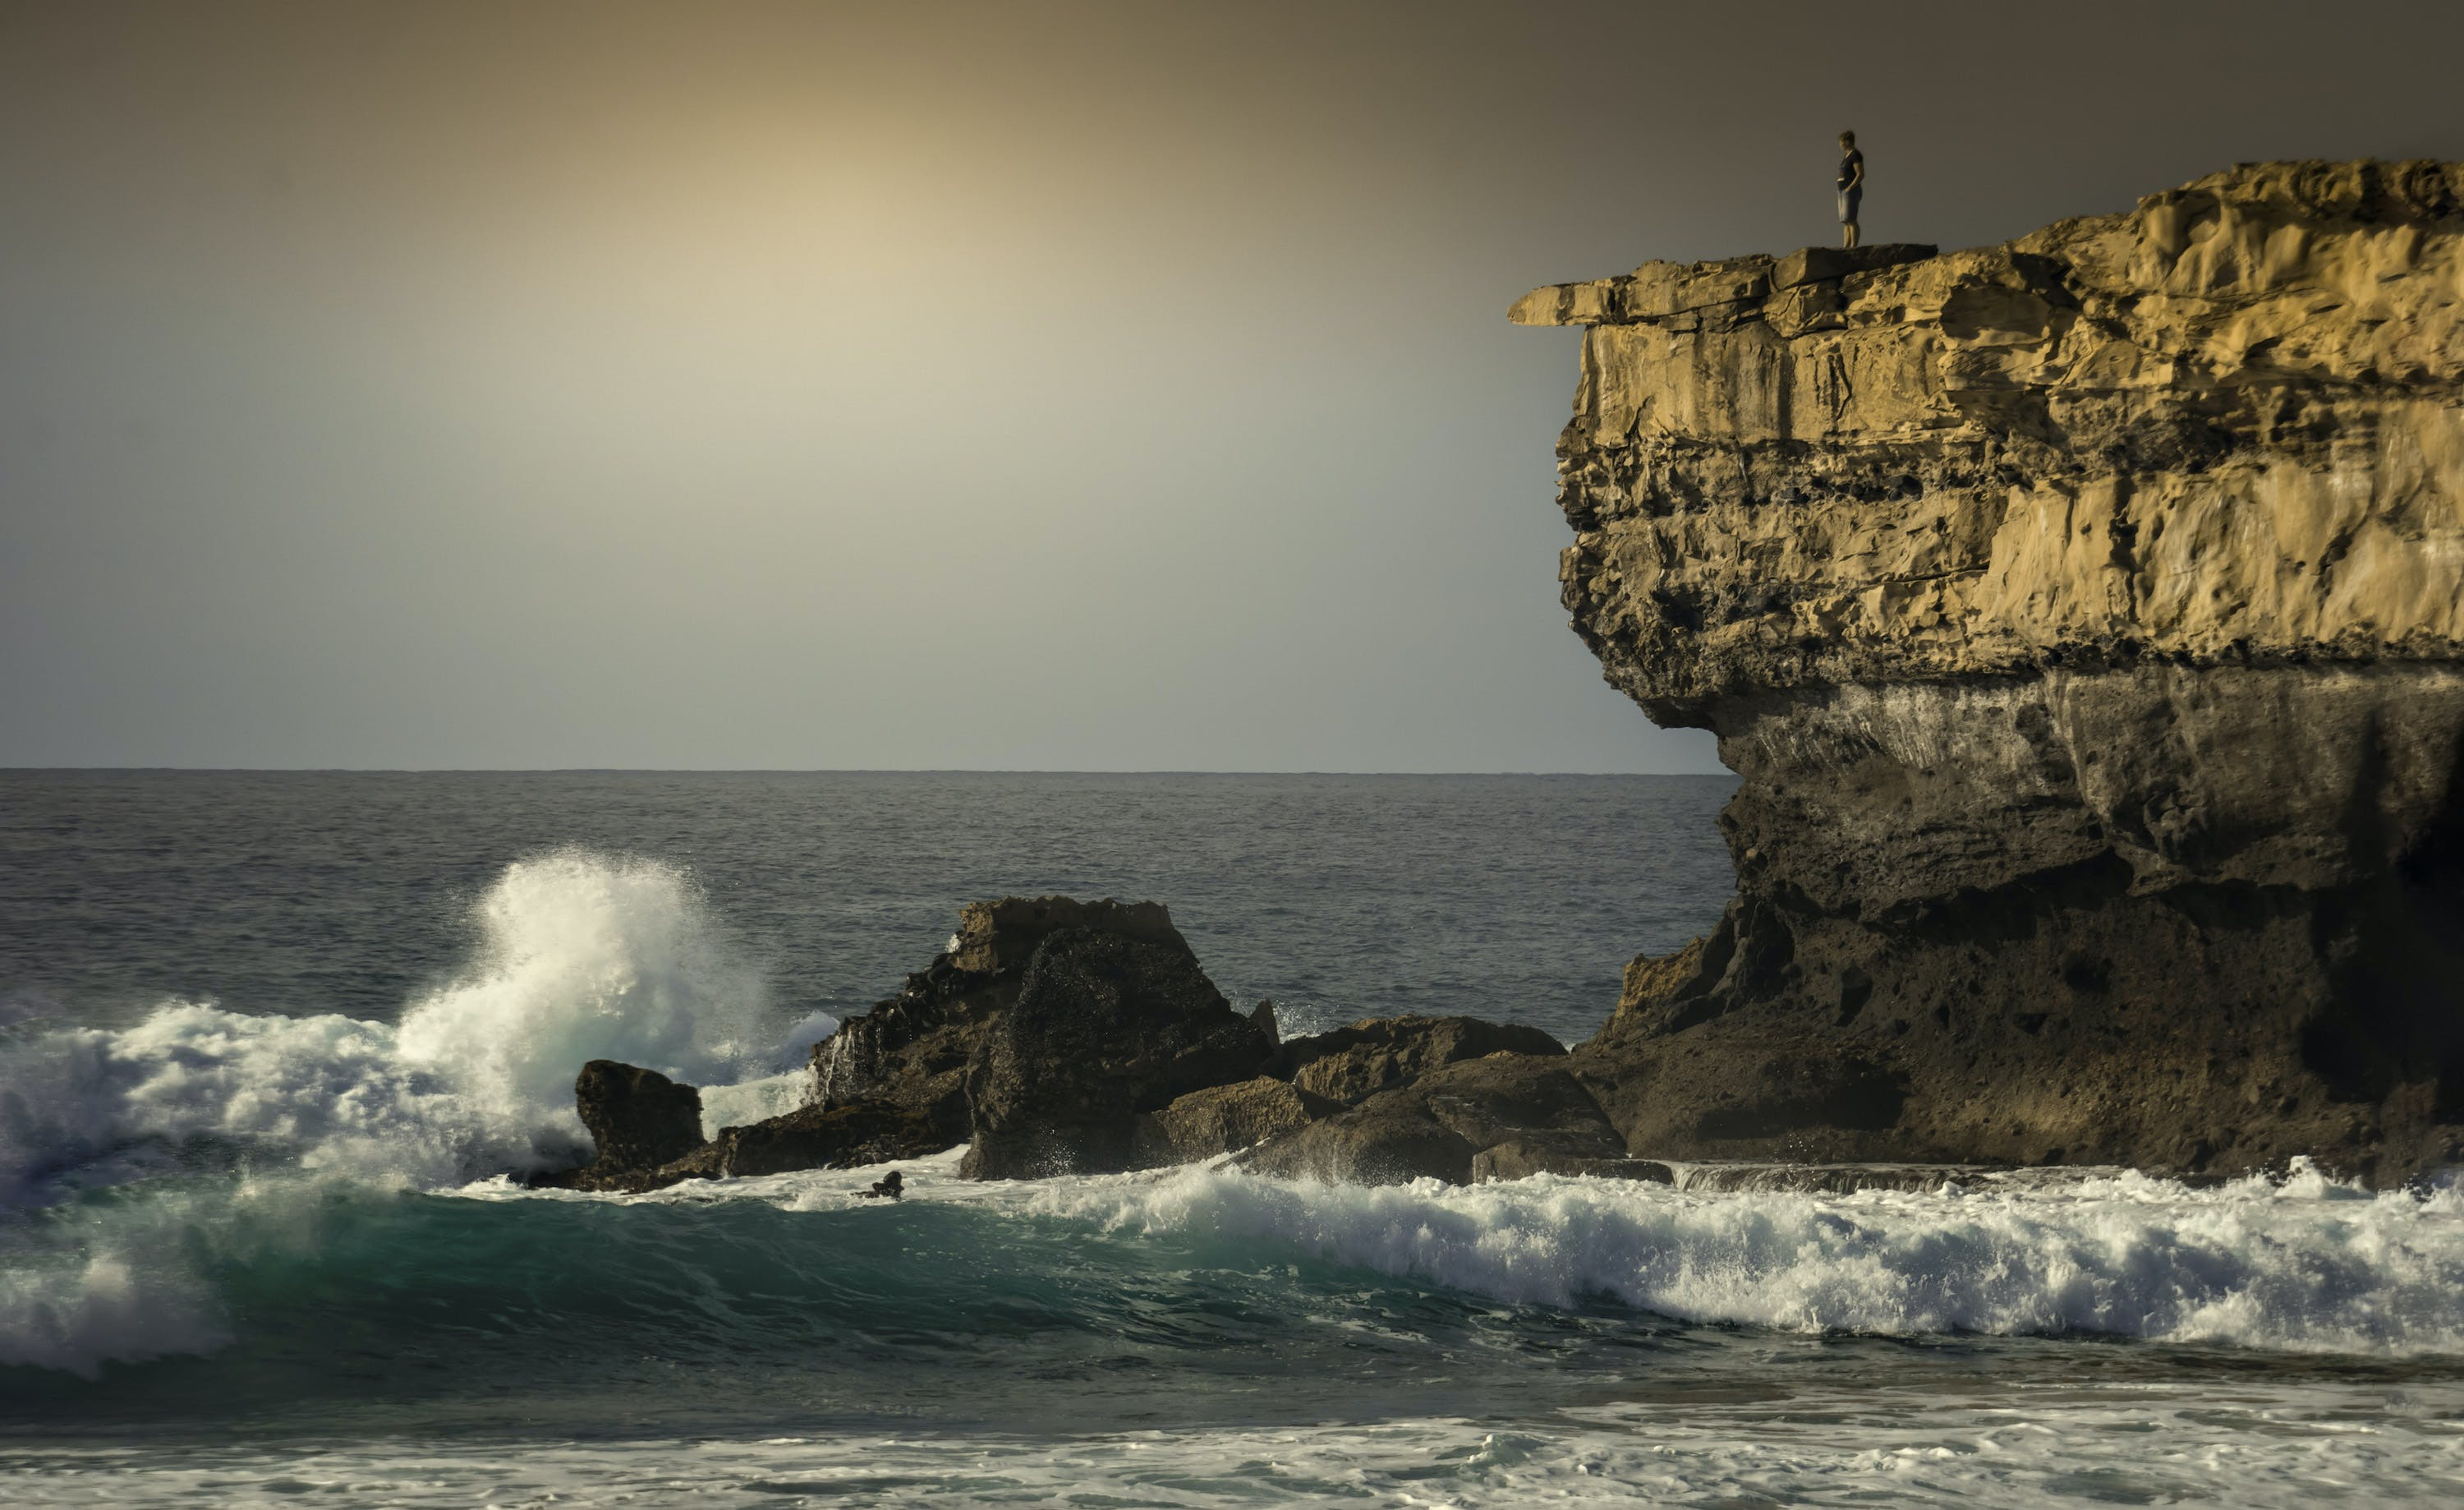 Person Standing on Top of Rock Formation Surrounded by Sea